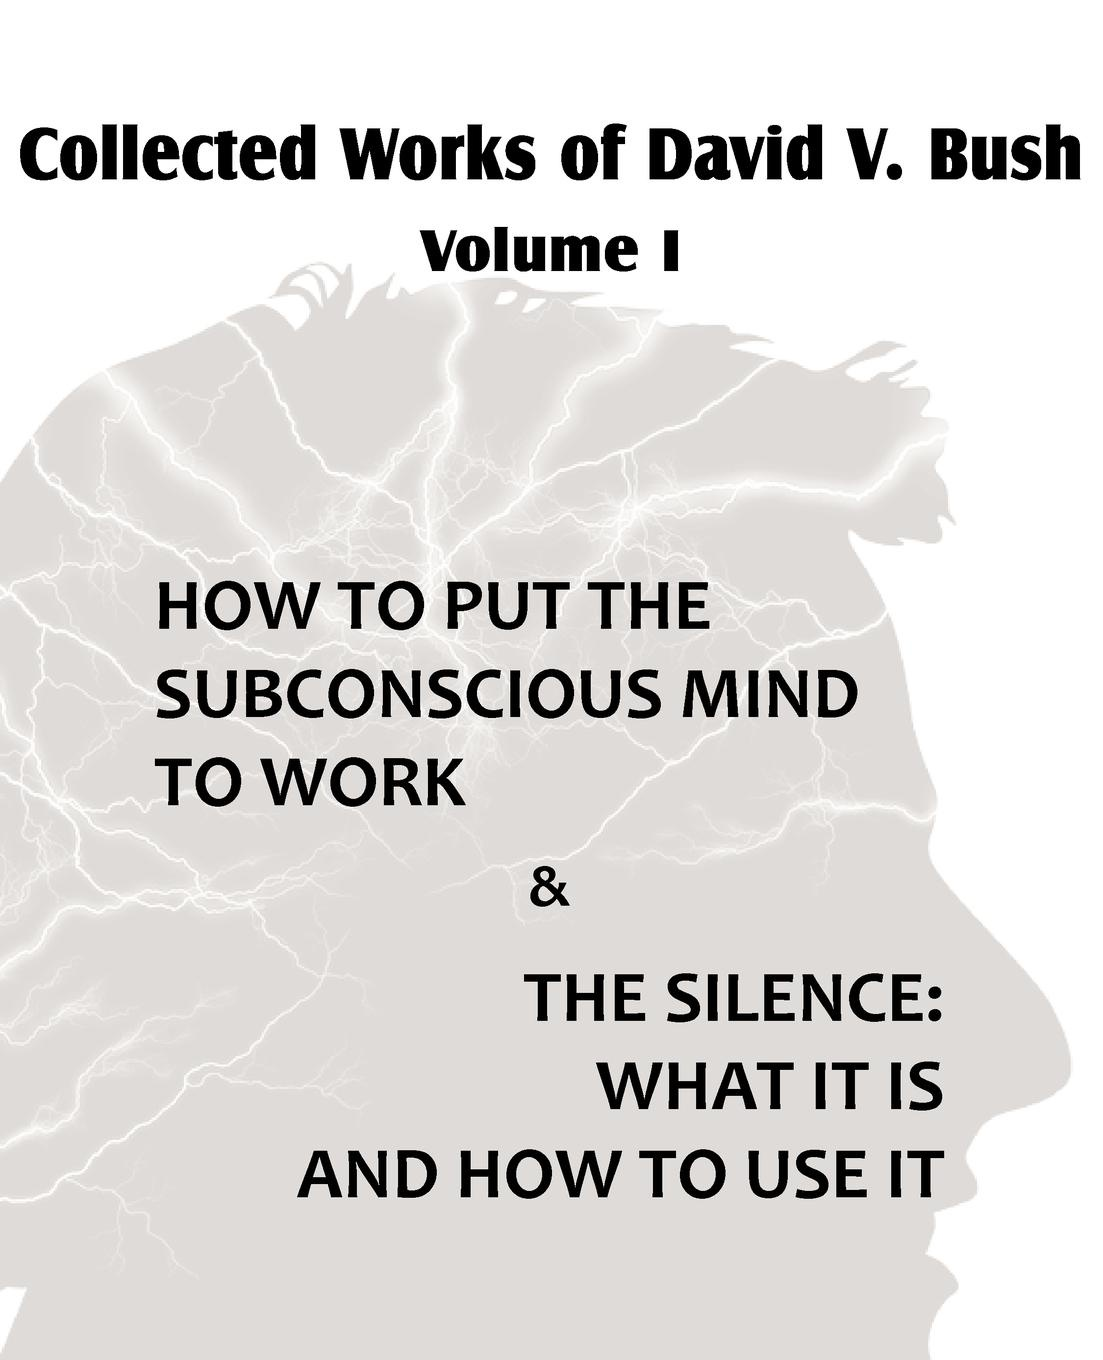 David V. Bush Collected Works of David V. Bush Volume I - How to put the Subconscious Mind to Work . The Silence how to free your mind